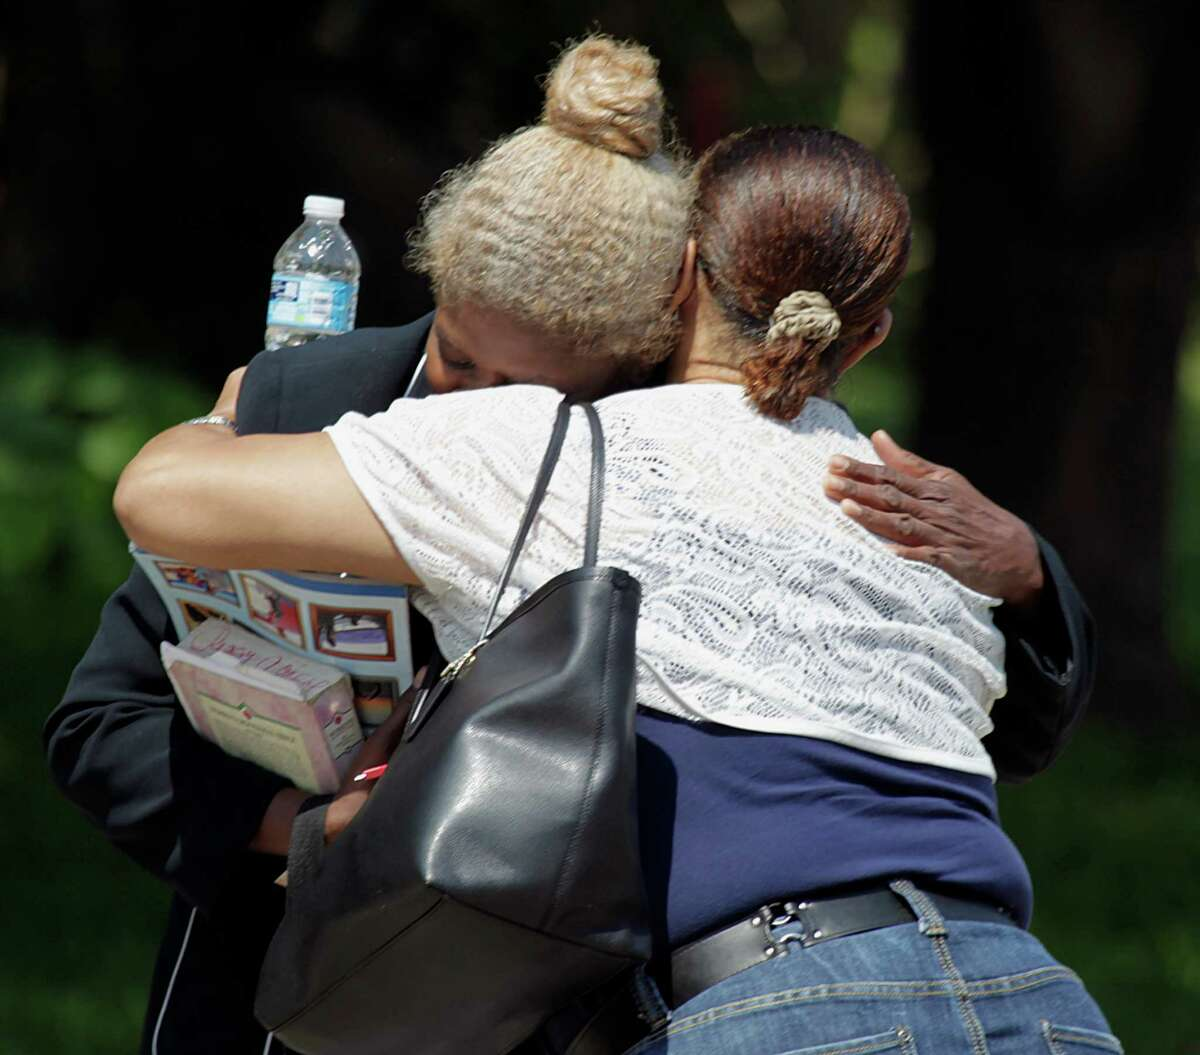 A woman believed to be the mother of the suspect in the shooting death of Harris County Deputy Darren Goforth is hugged by another woman near the suspect's home in Cypress.